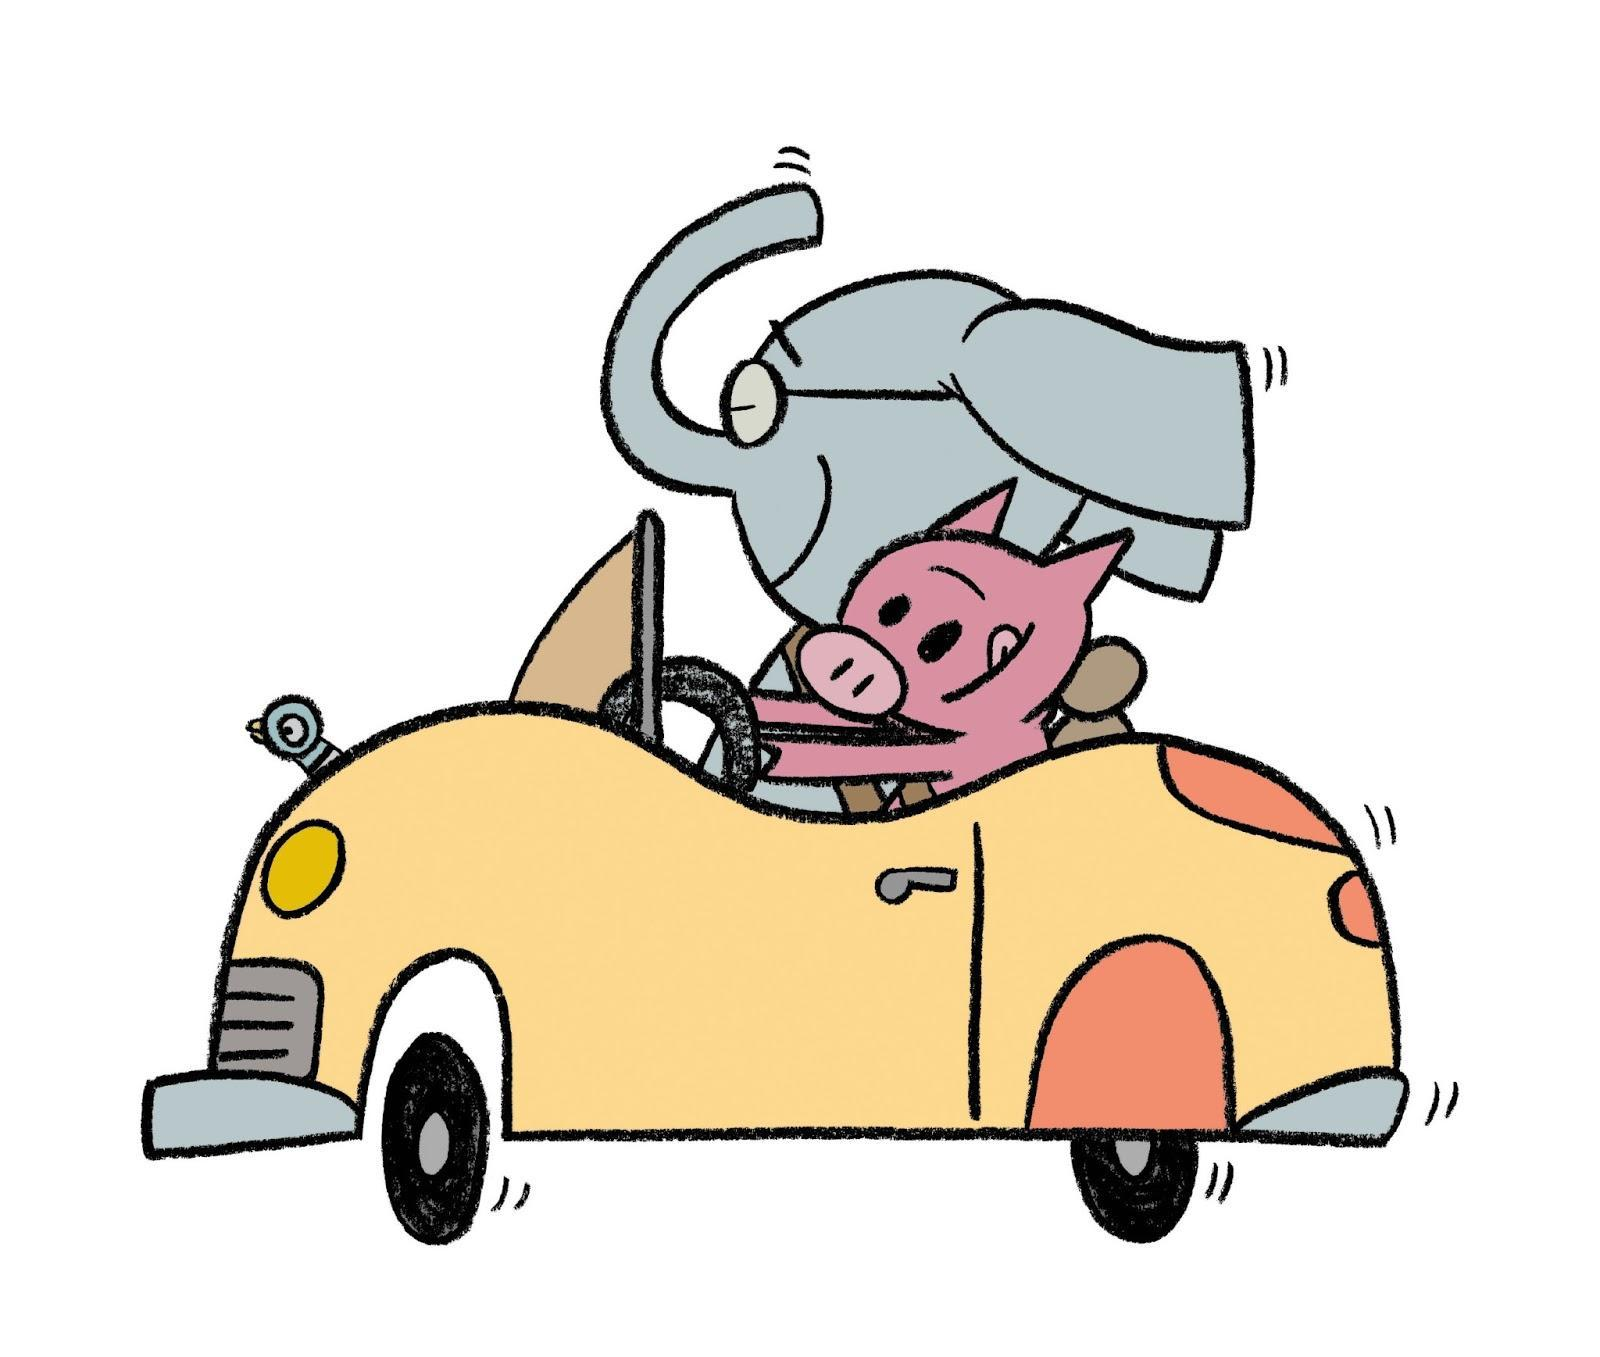 Elephant and Piggie Let's go for a drive